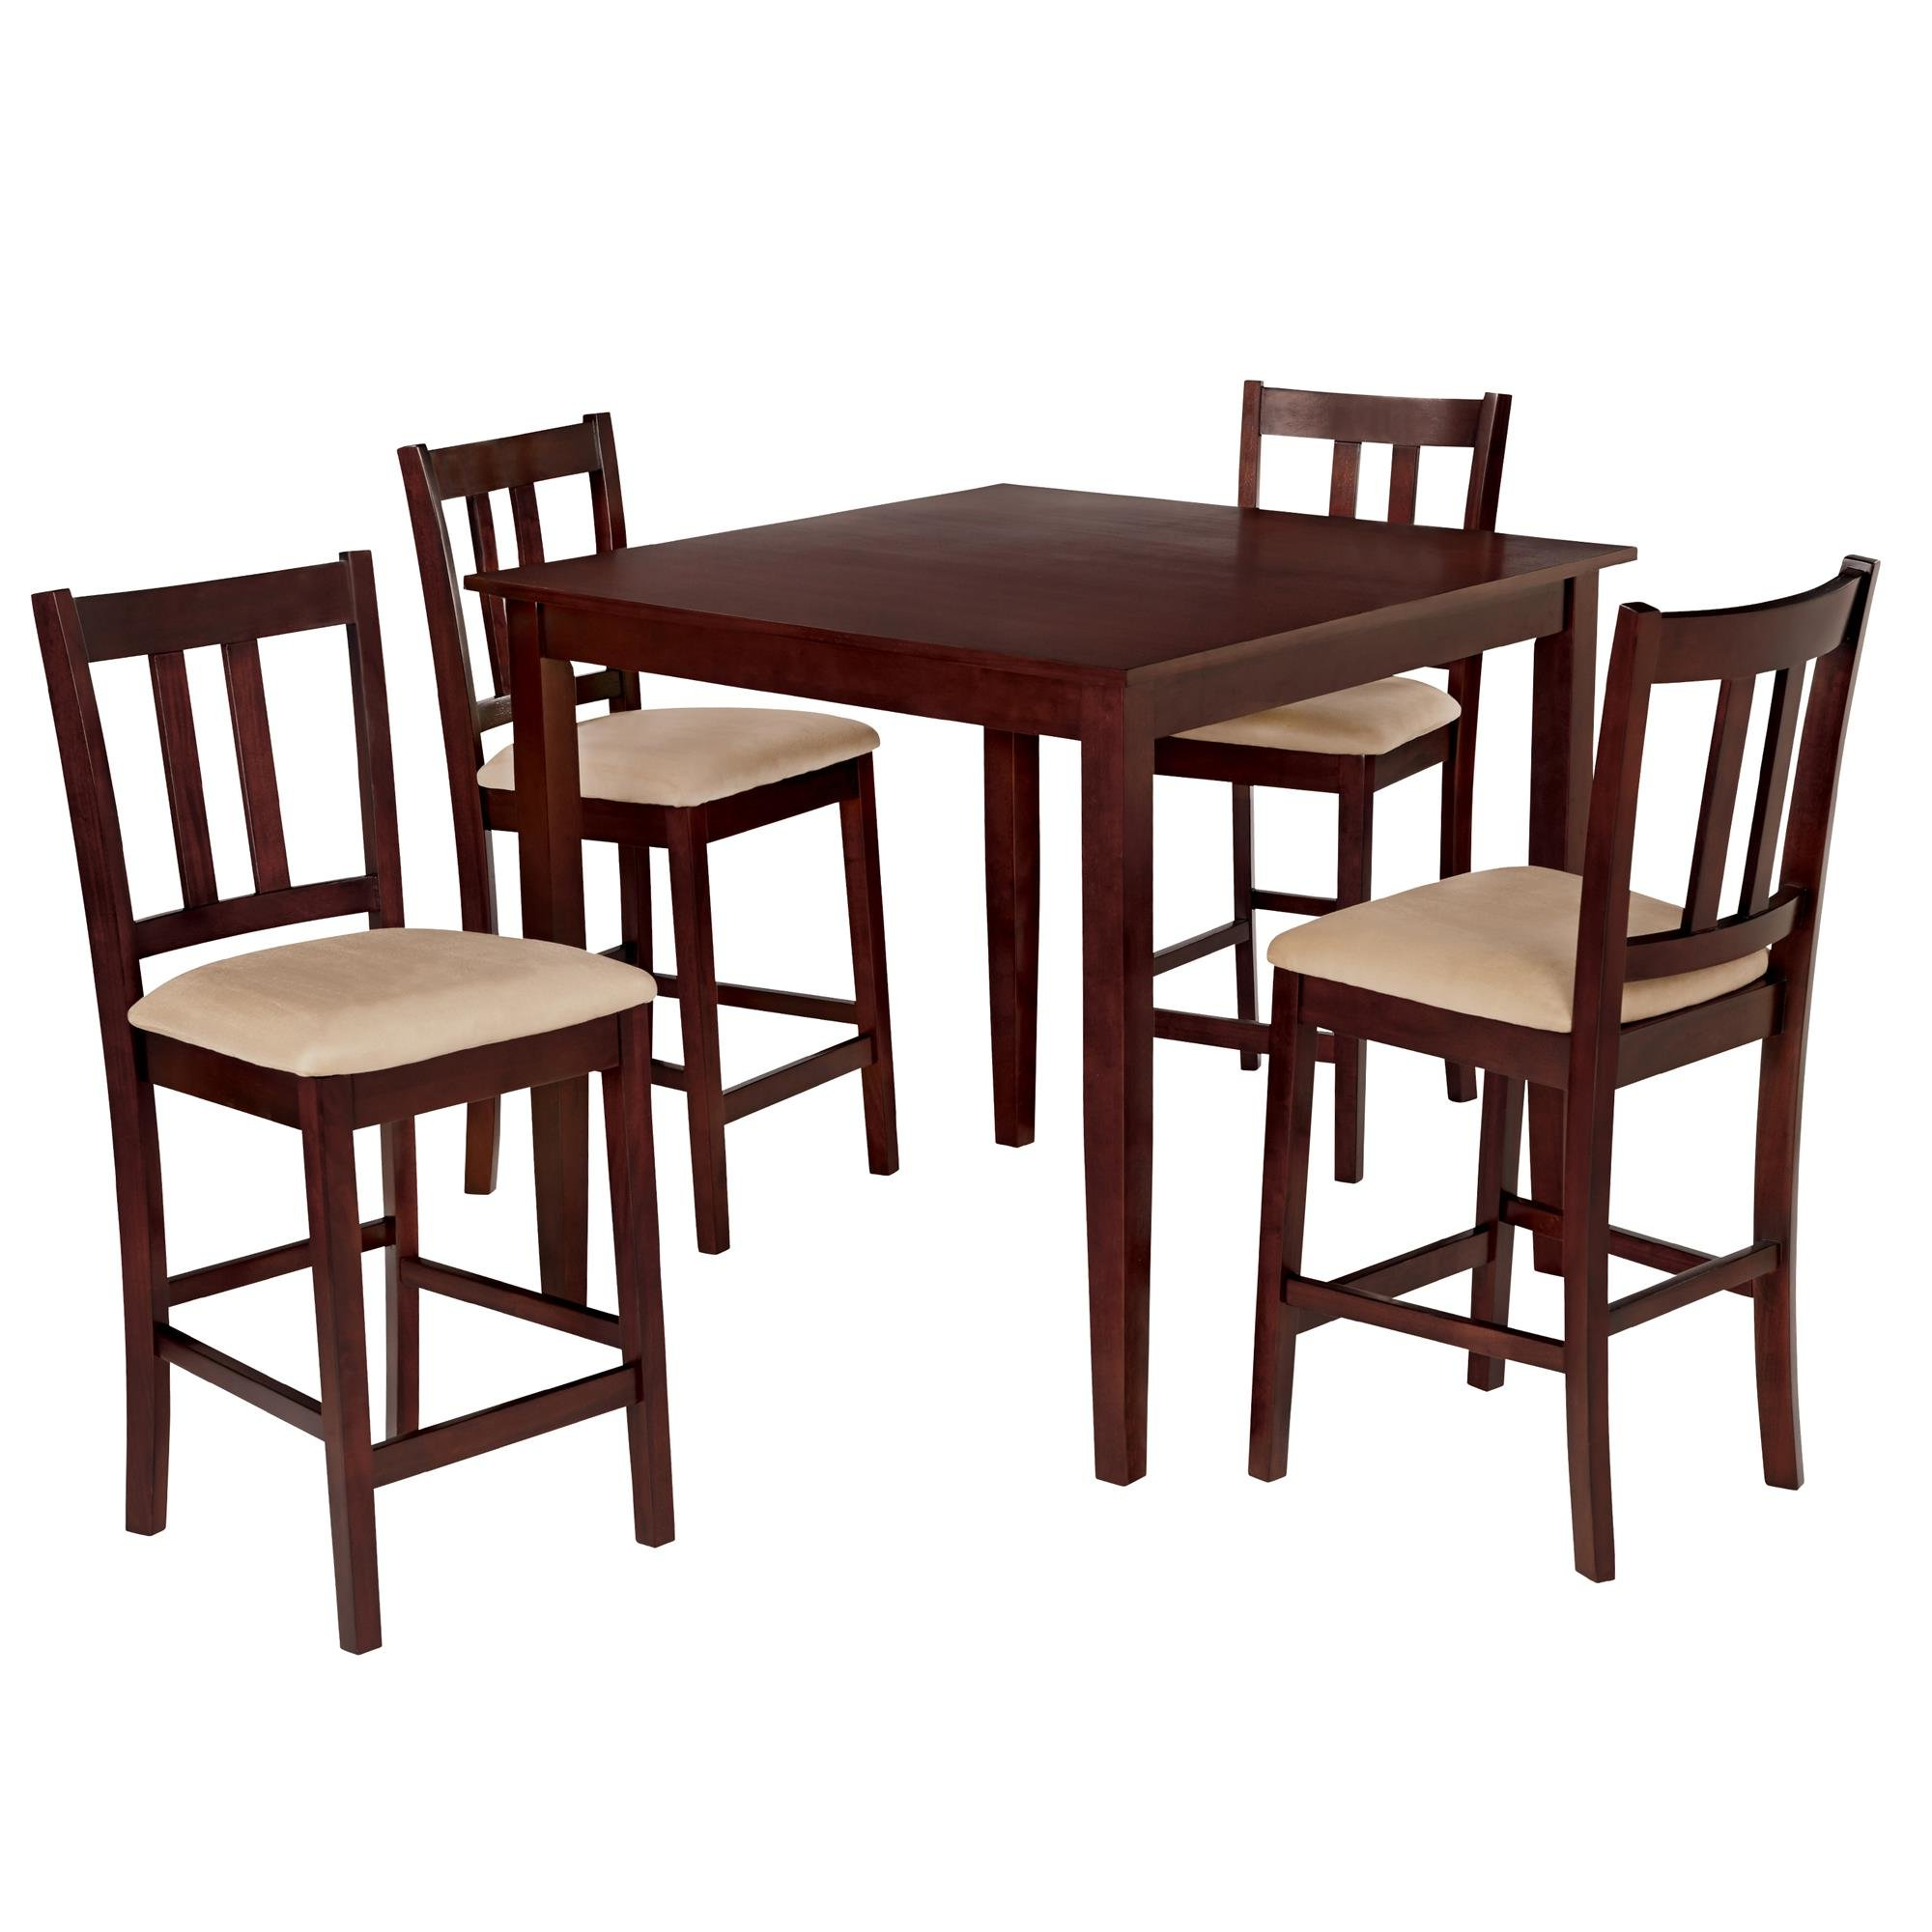 Sundberg 5 Piece Solid Wood Dining Sets With Famous Charlton Home Atterberry 5 Piece Solid Wood Dining Set & Reviews (View 19 of 25)